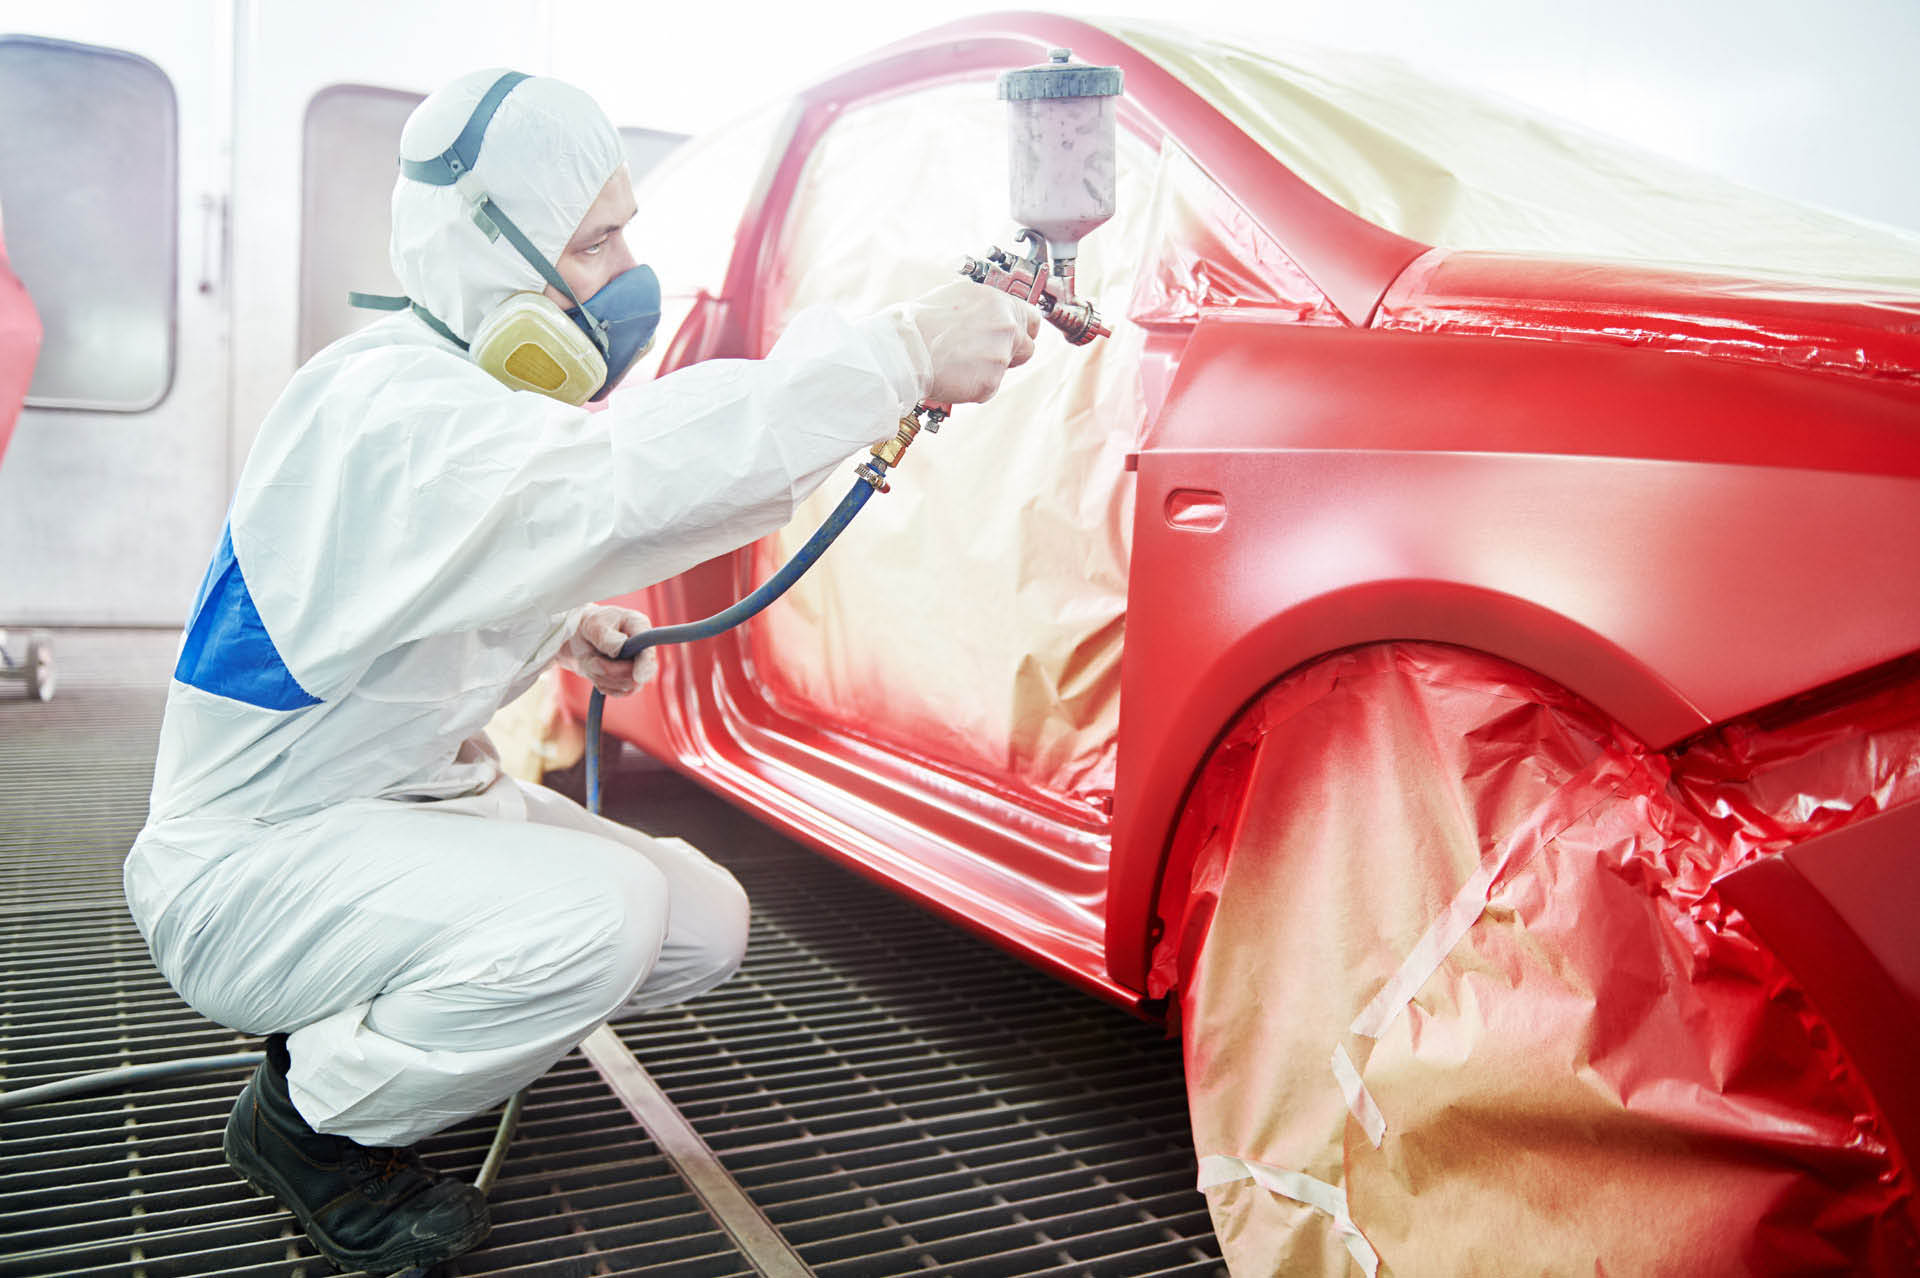 Get a custom paint job on your car at Prestige Auto Body and Painting in Anaheim, CA.